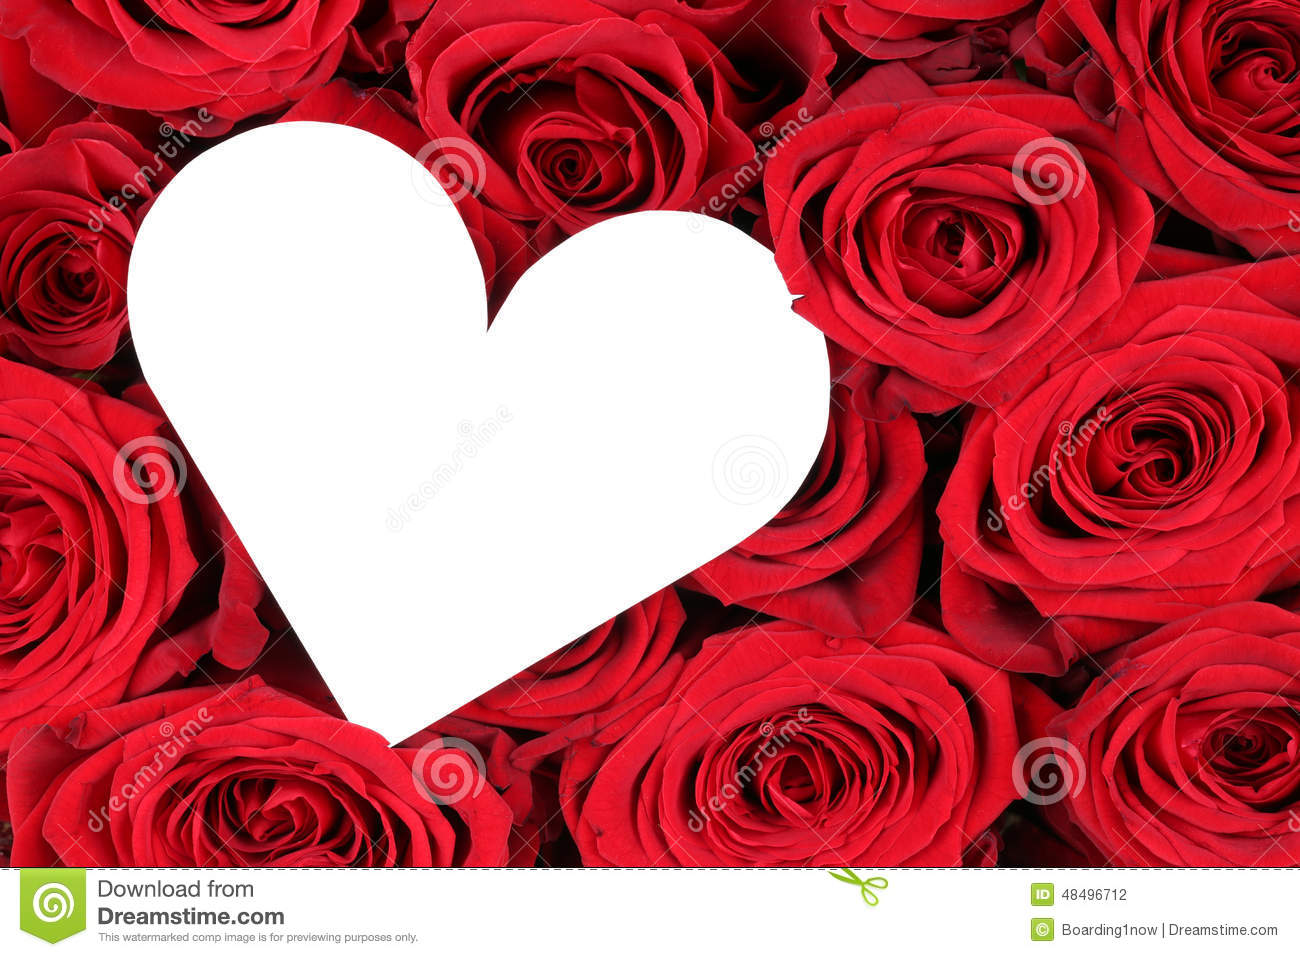 Red roses with heart as symbol of love on valentines day stock red roses with heart as symbol of love on valentine s day buycottarizona